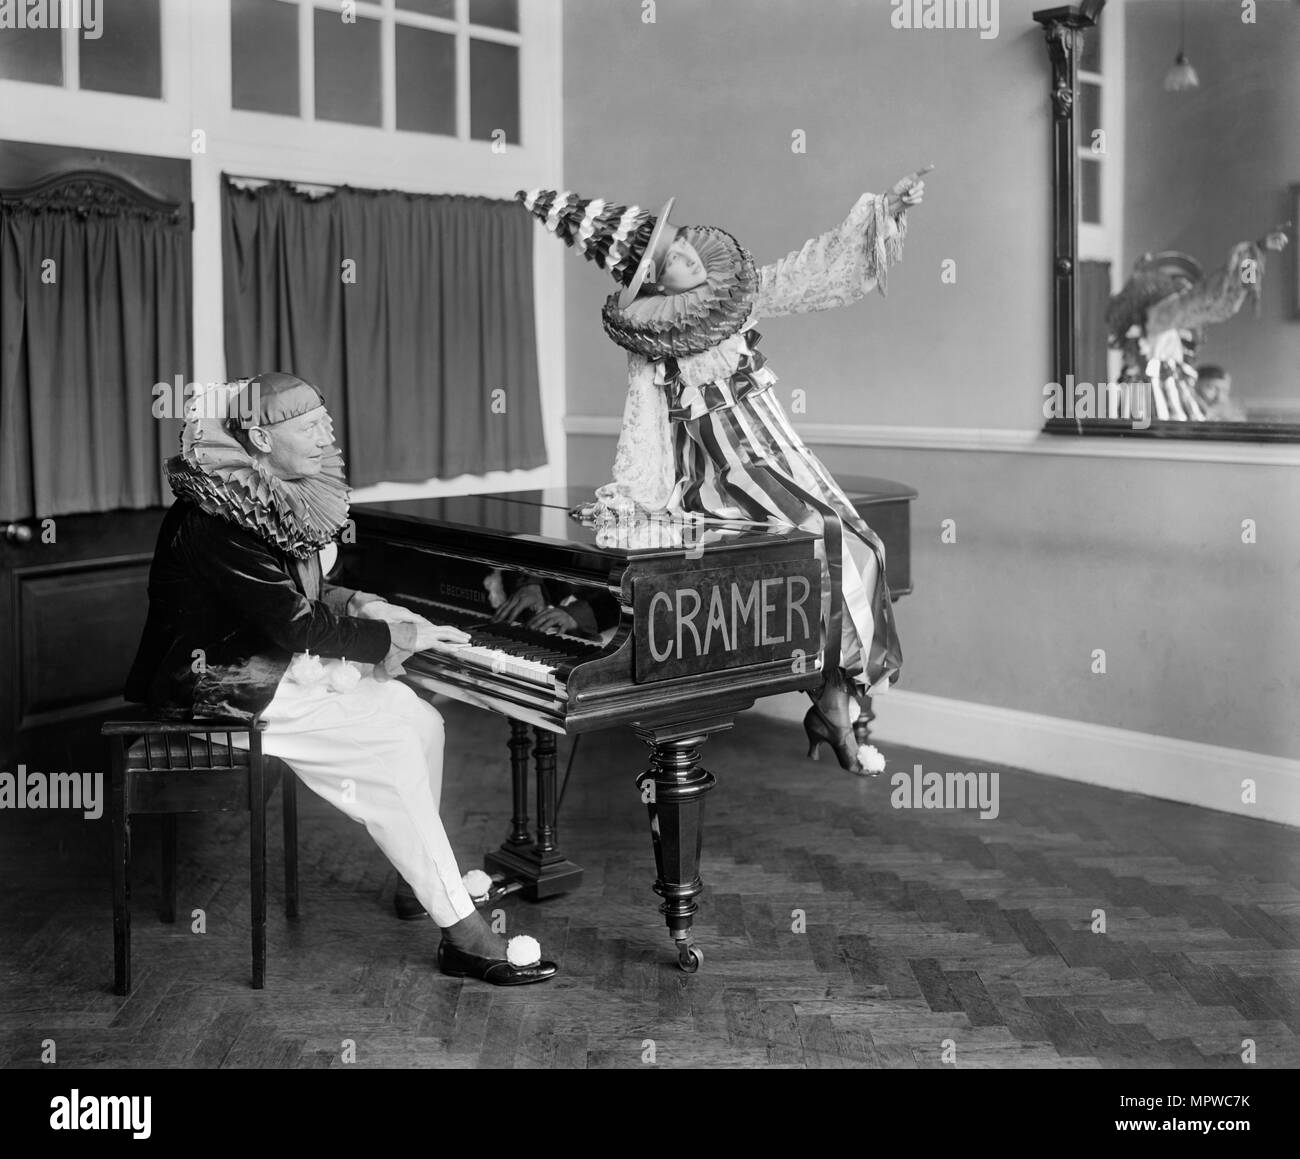 Two Pierrot clowns performing a routine with a piano, 1917. Artist: Bedford Lemere and Company. - Stock Image